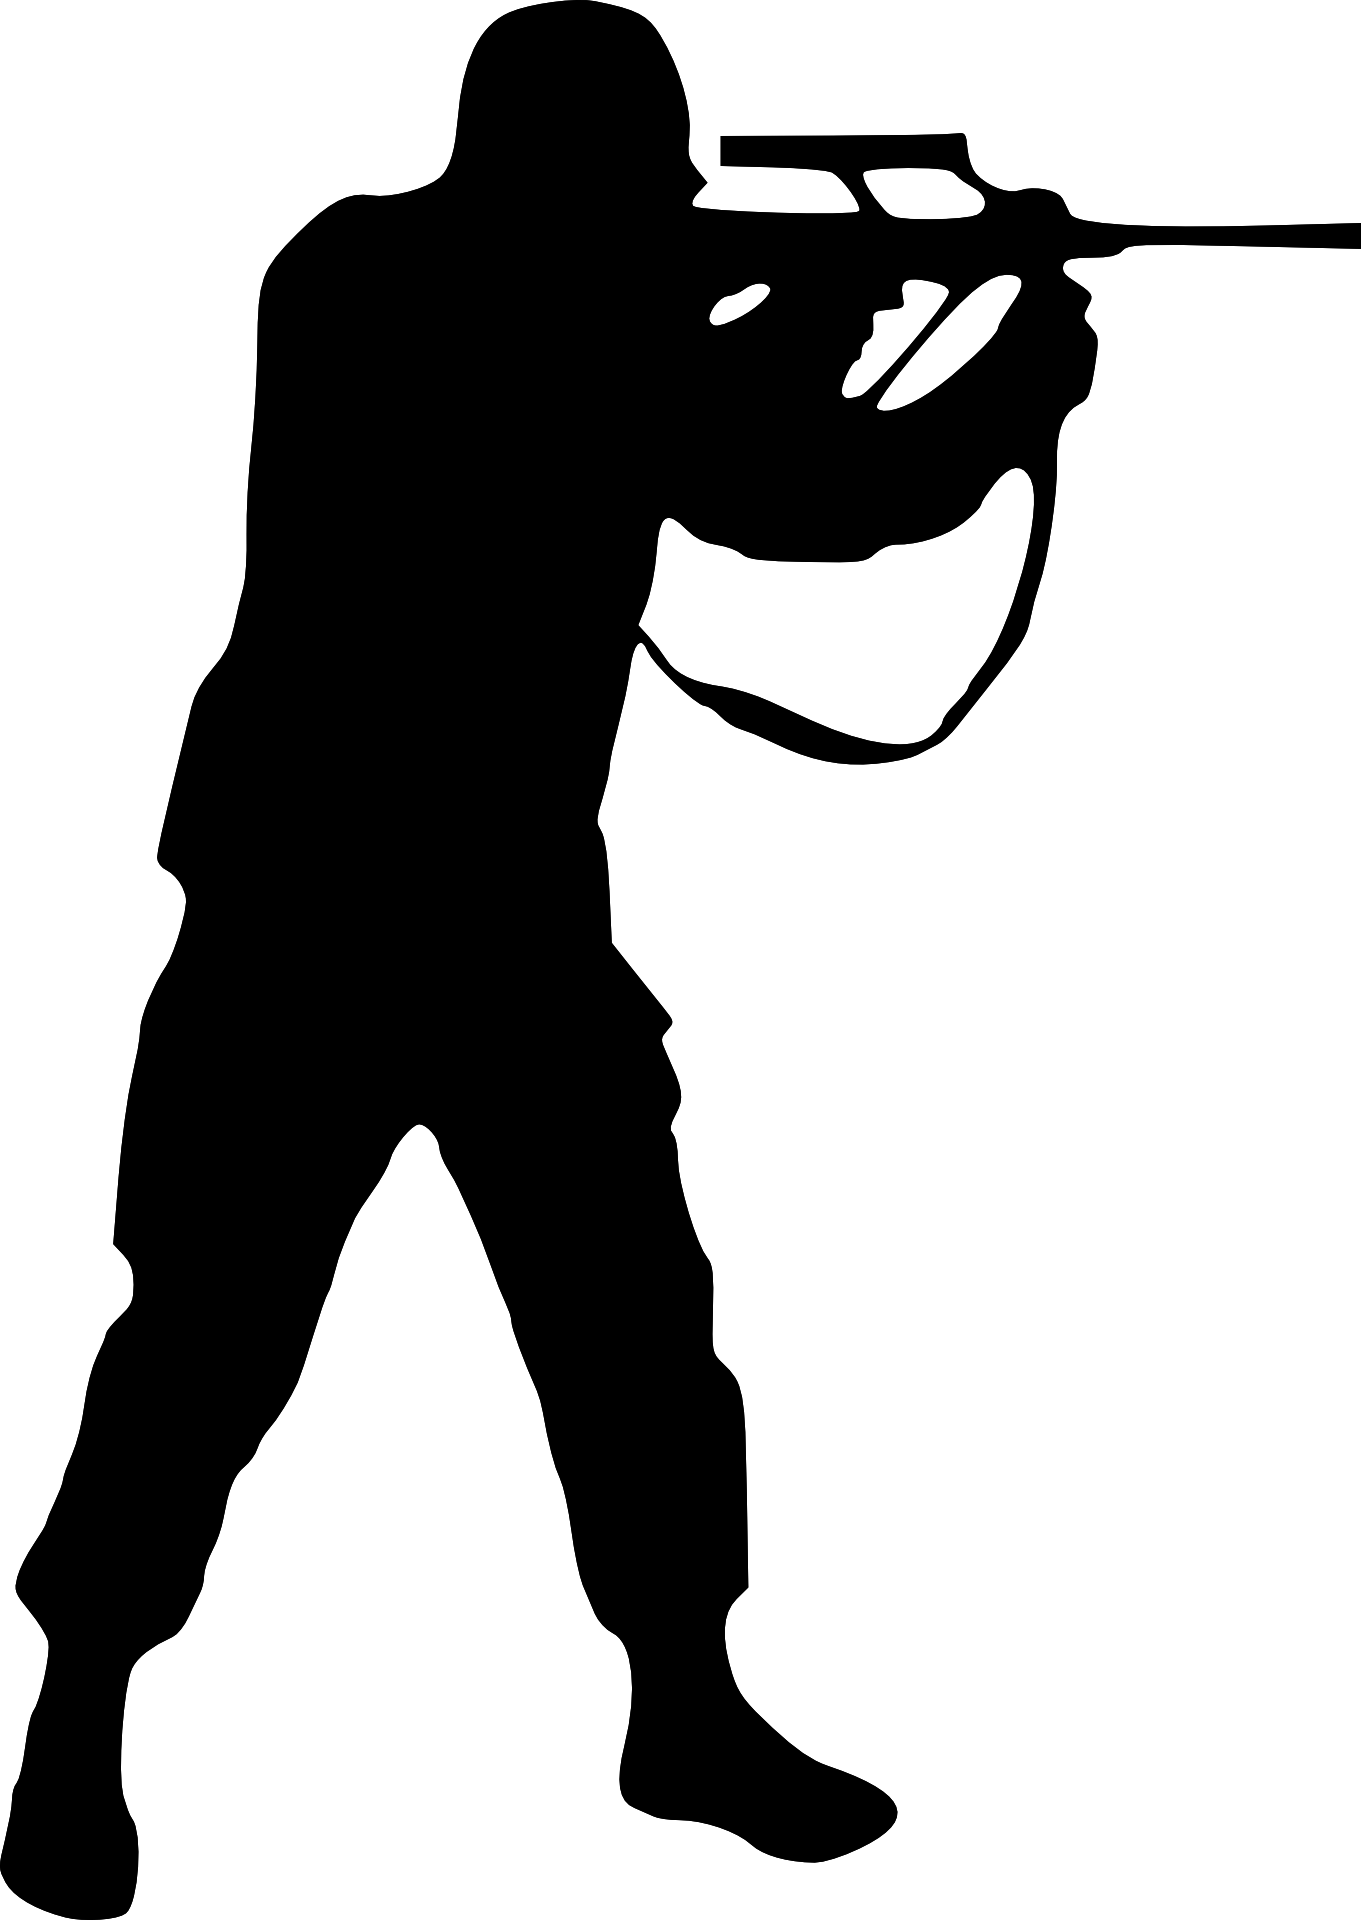 Soldier shooting silhouette vector-battle outline